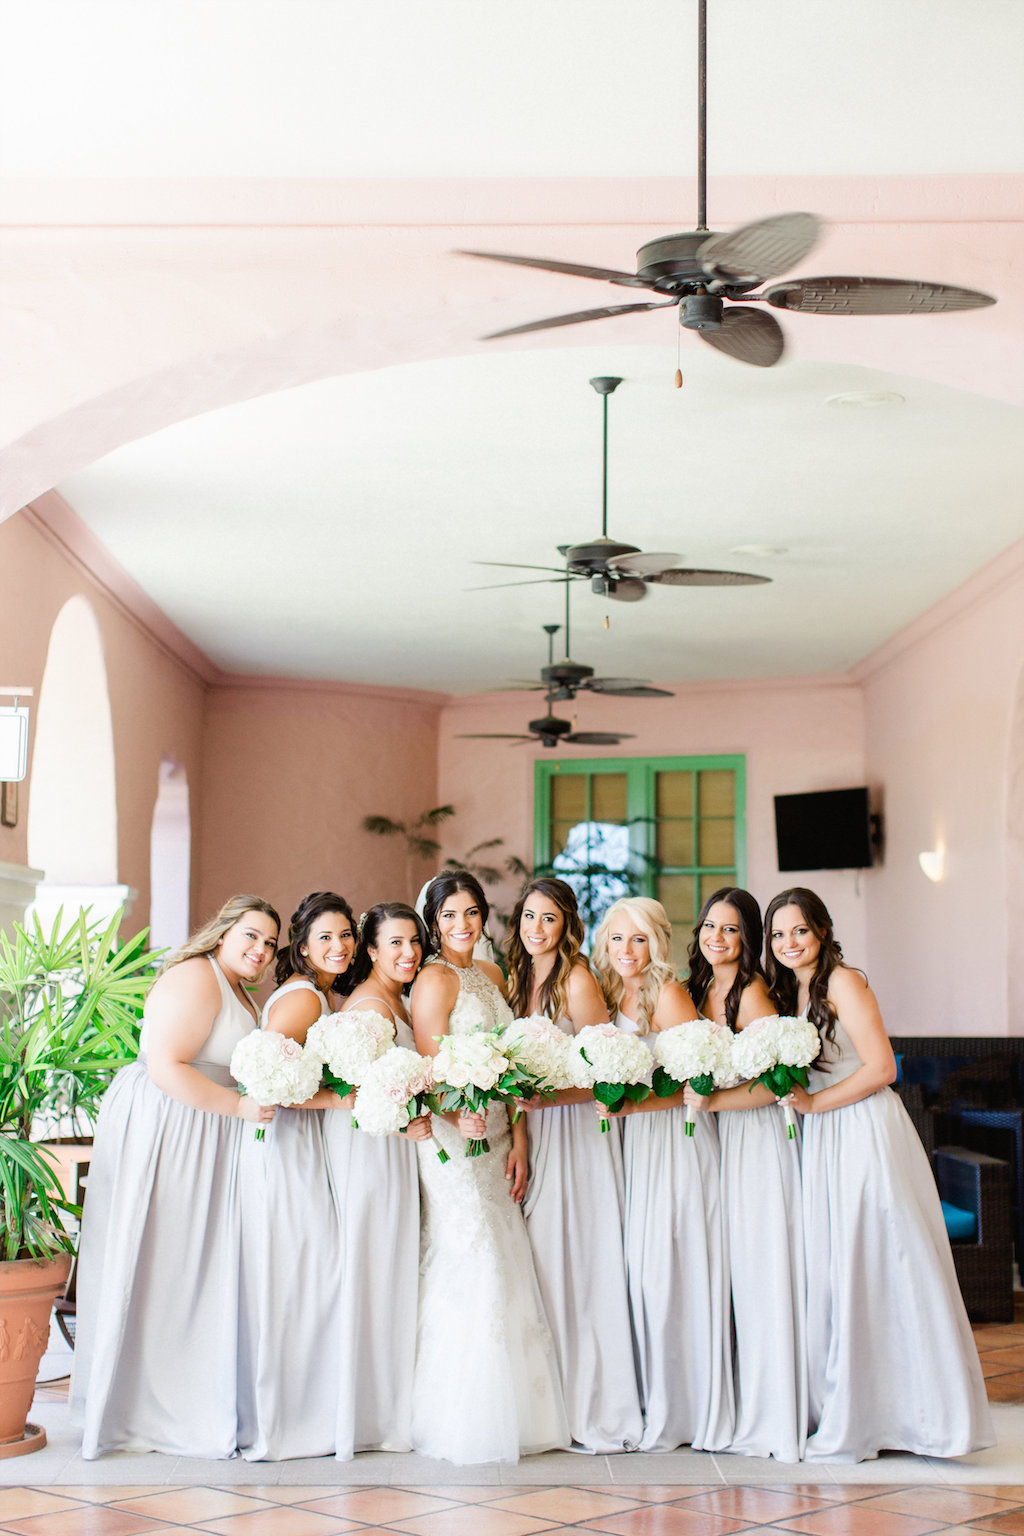 Bride and Bridesmaids Wedding Portrait in High Halter Lace and Rhinestone Bodice Wedding Dress, and Grey Bridesmaids Dresses with White Floral Bouquets   Tampa Hair and Makeup Artist Femme Akoi   St. Petersburg Photographer Ailyn La Torre Photography